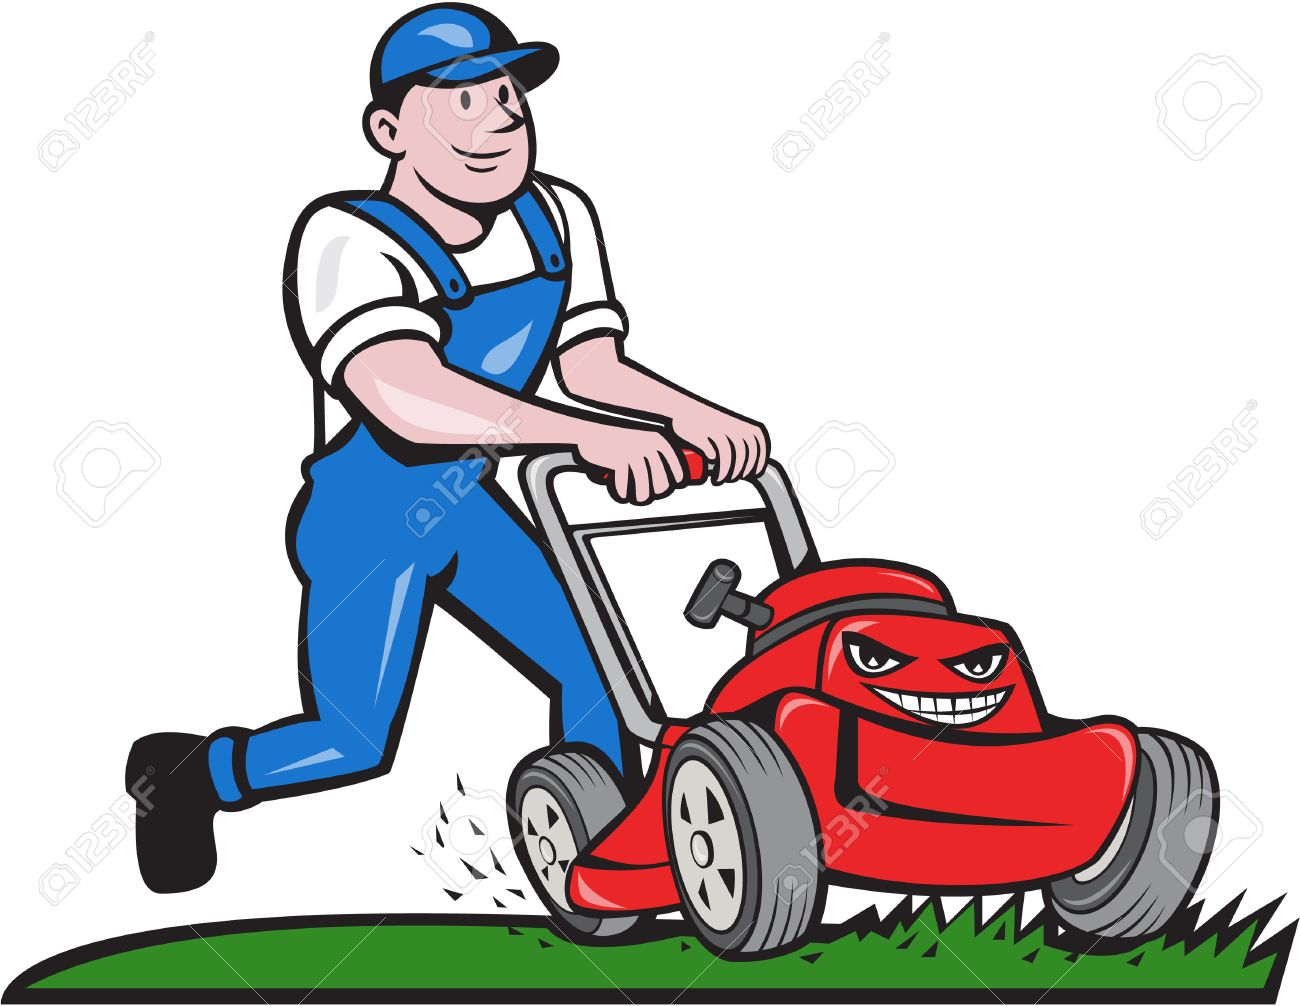 Illustration of a gardener wearing hat and overalls with lawnmower...